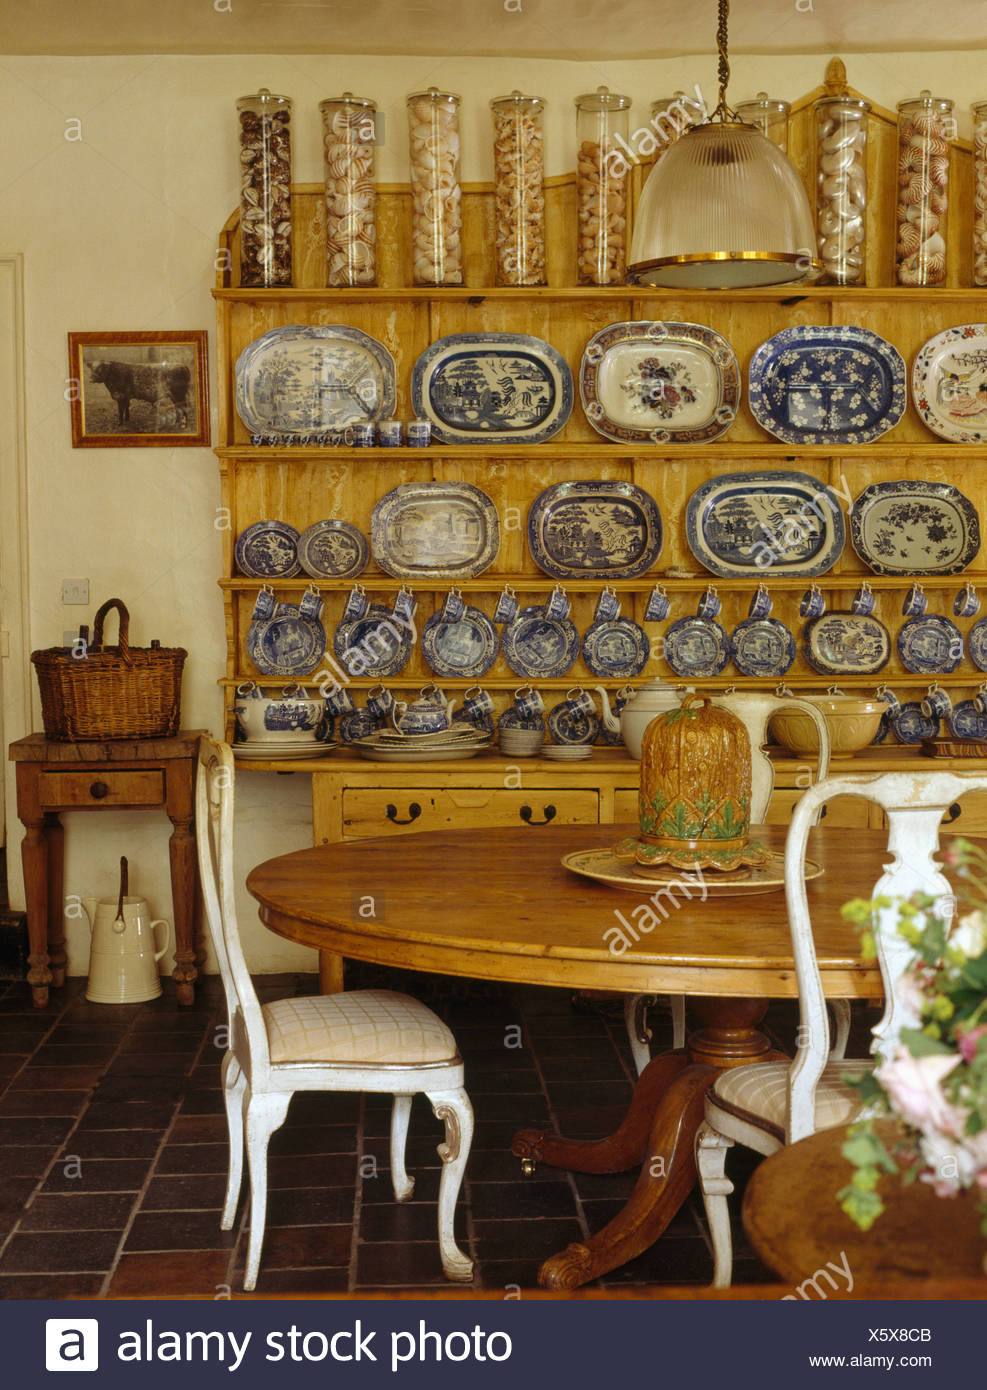 Glass Storage Jars And Blue White Plate Collection On Dresser In Victorian Style Dining